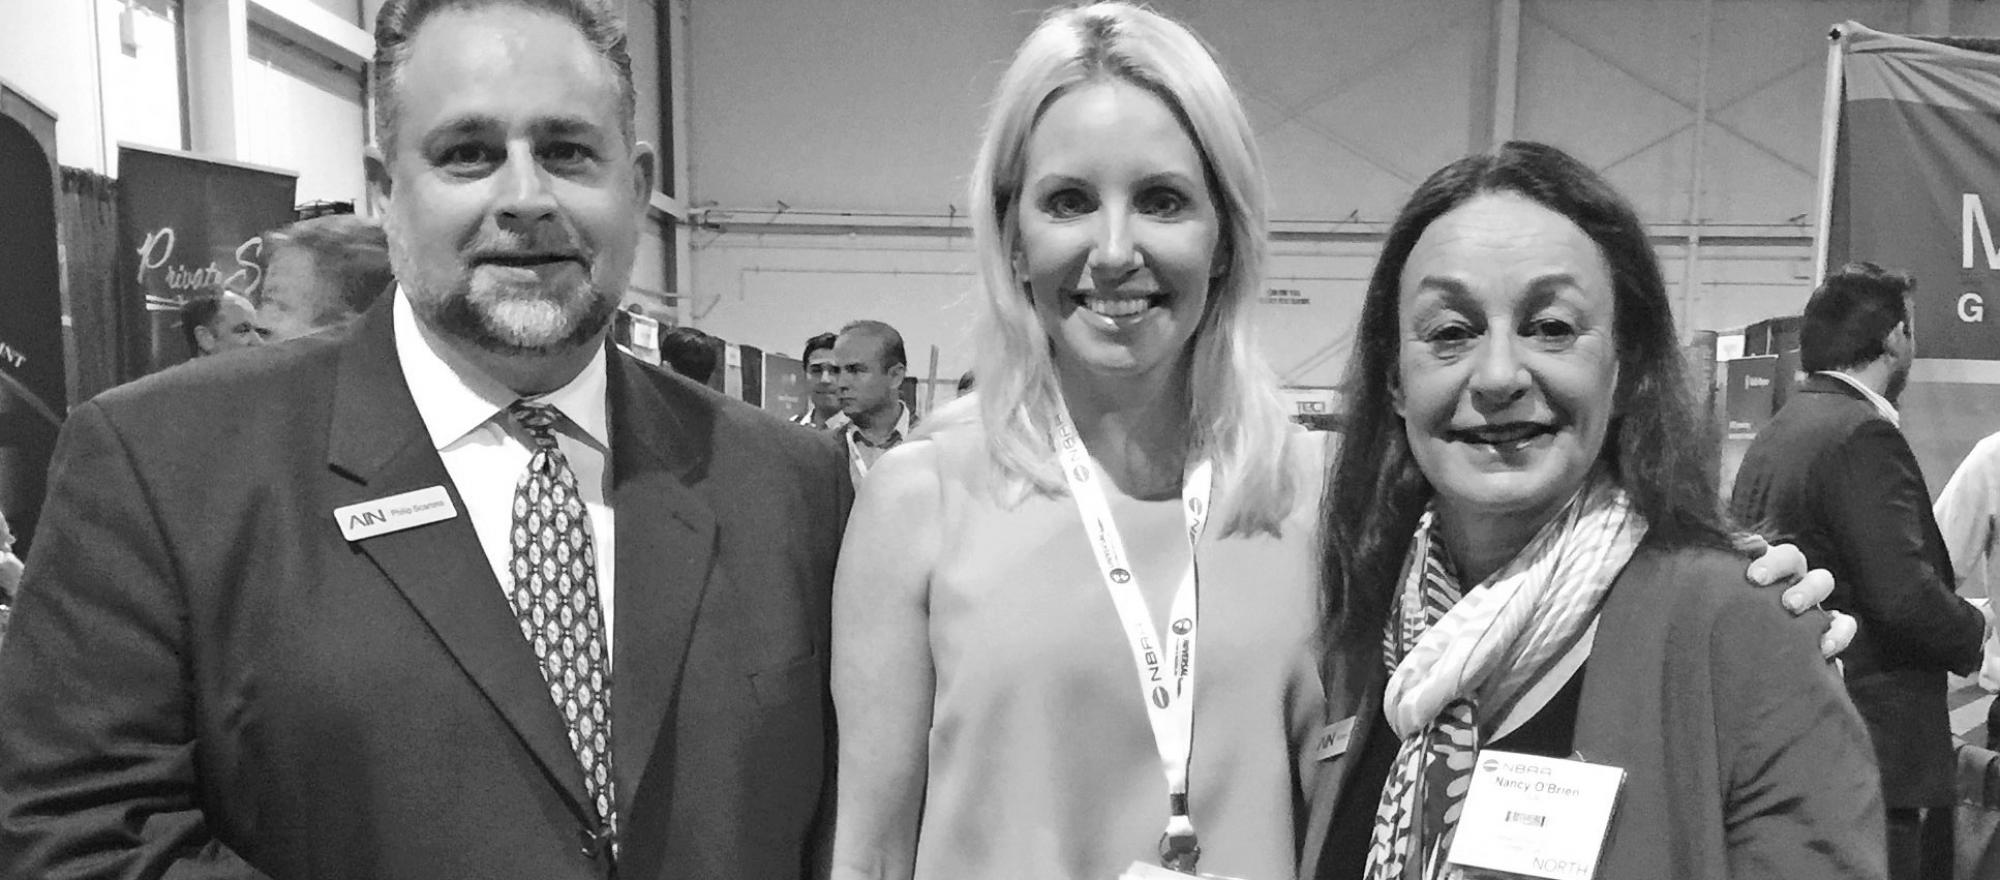 Jennifer Leach English (center) with BJT's onsite logistics manager Philip Scarano and associate publisher Nancy O'Brien at the NBAA Regional Forum in West Palm Beach.